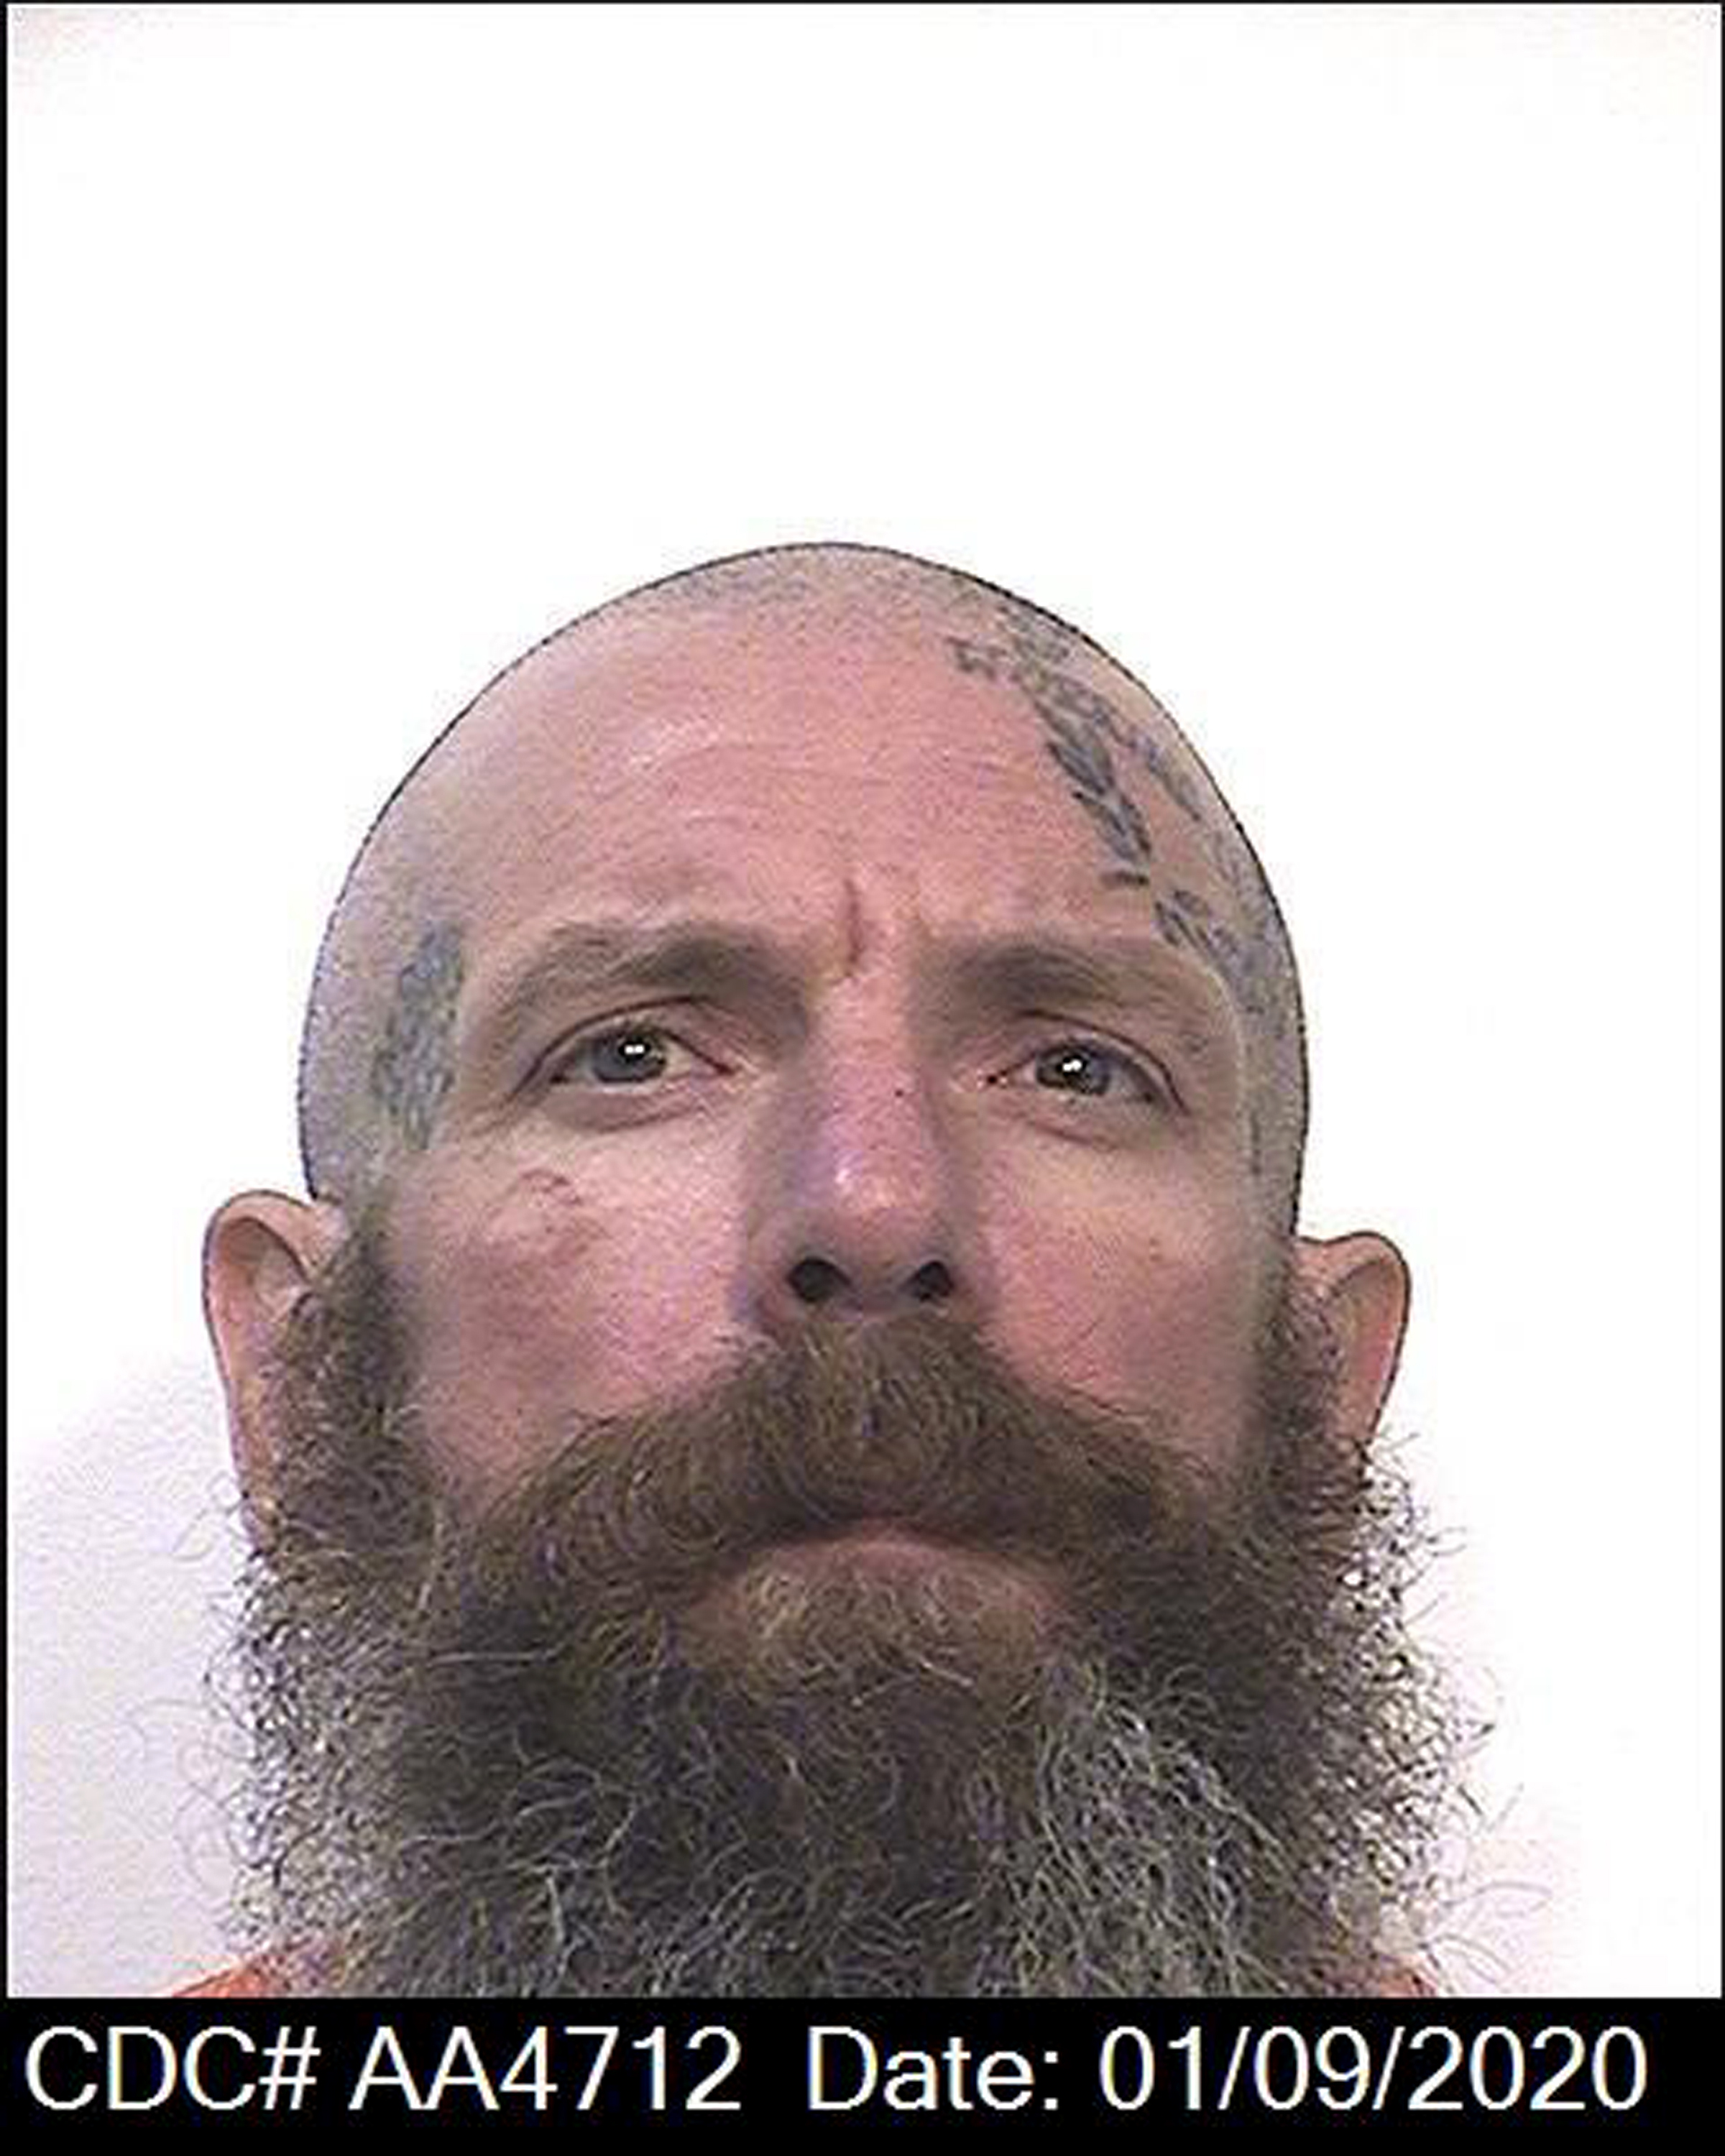 Inmate says in letter that he killed 2 molesters in prison